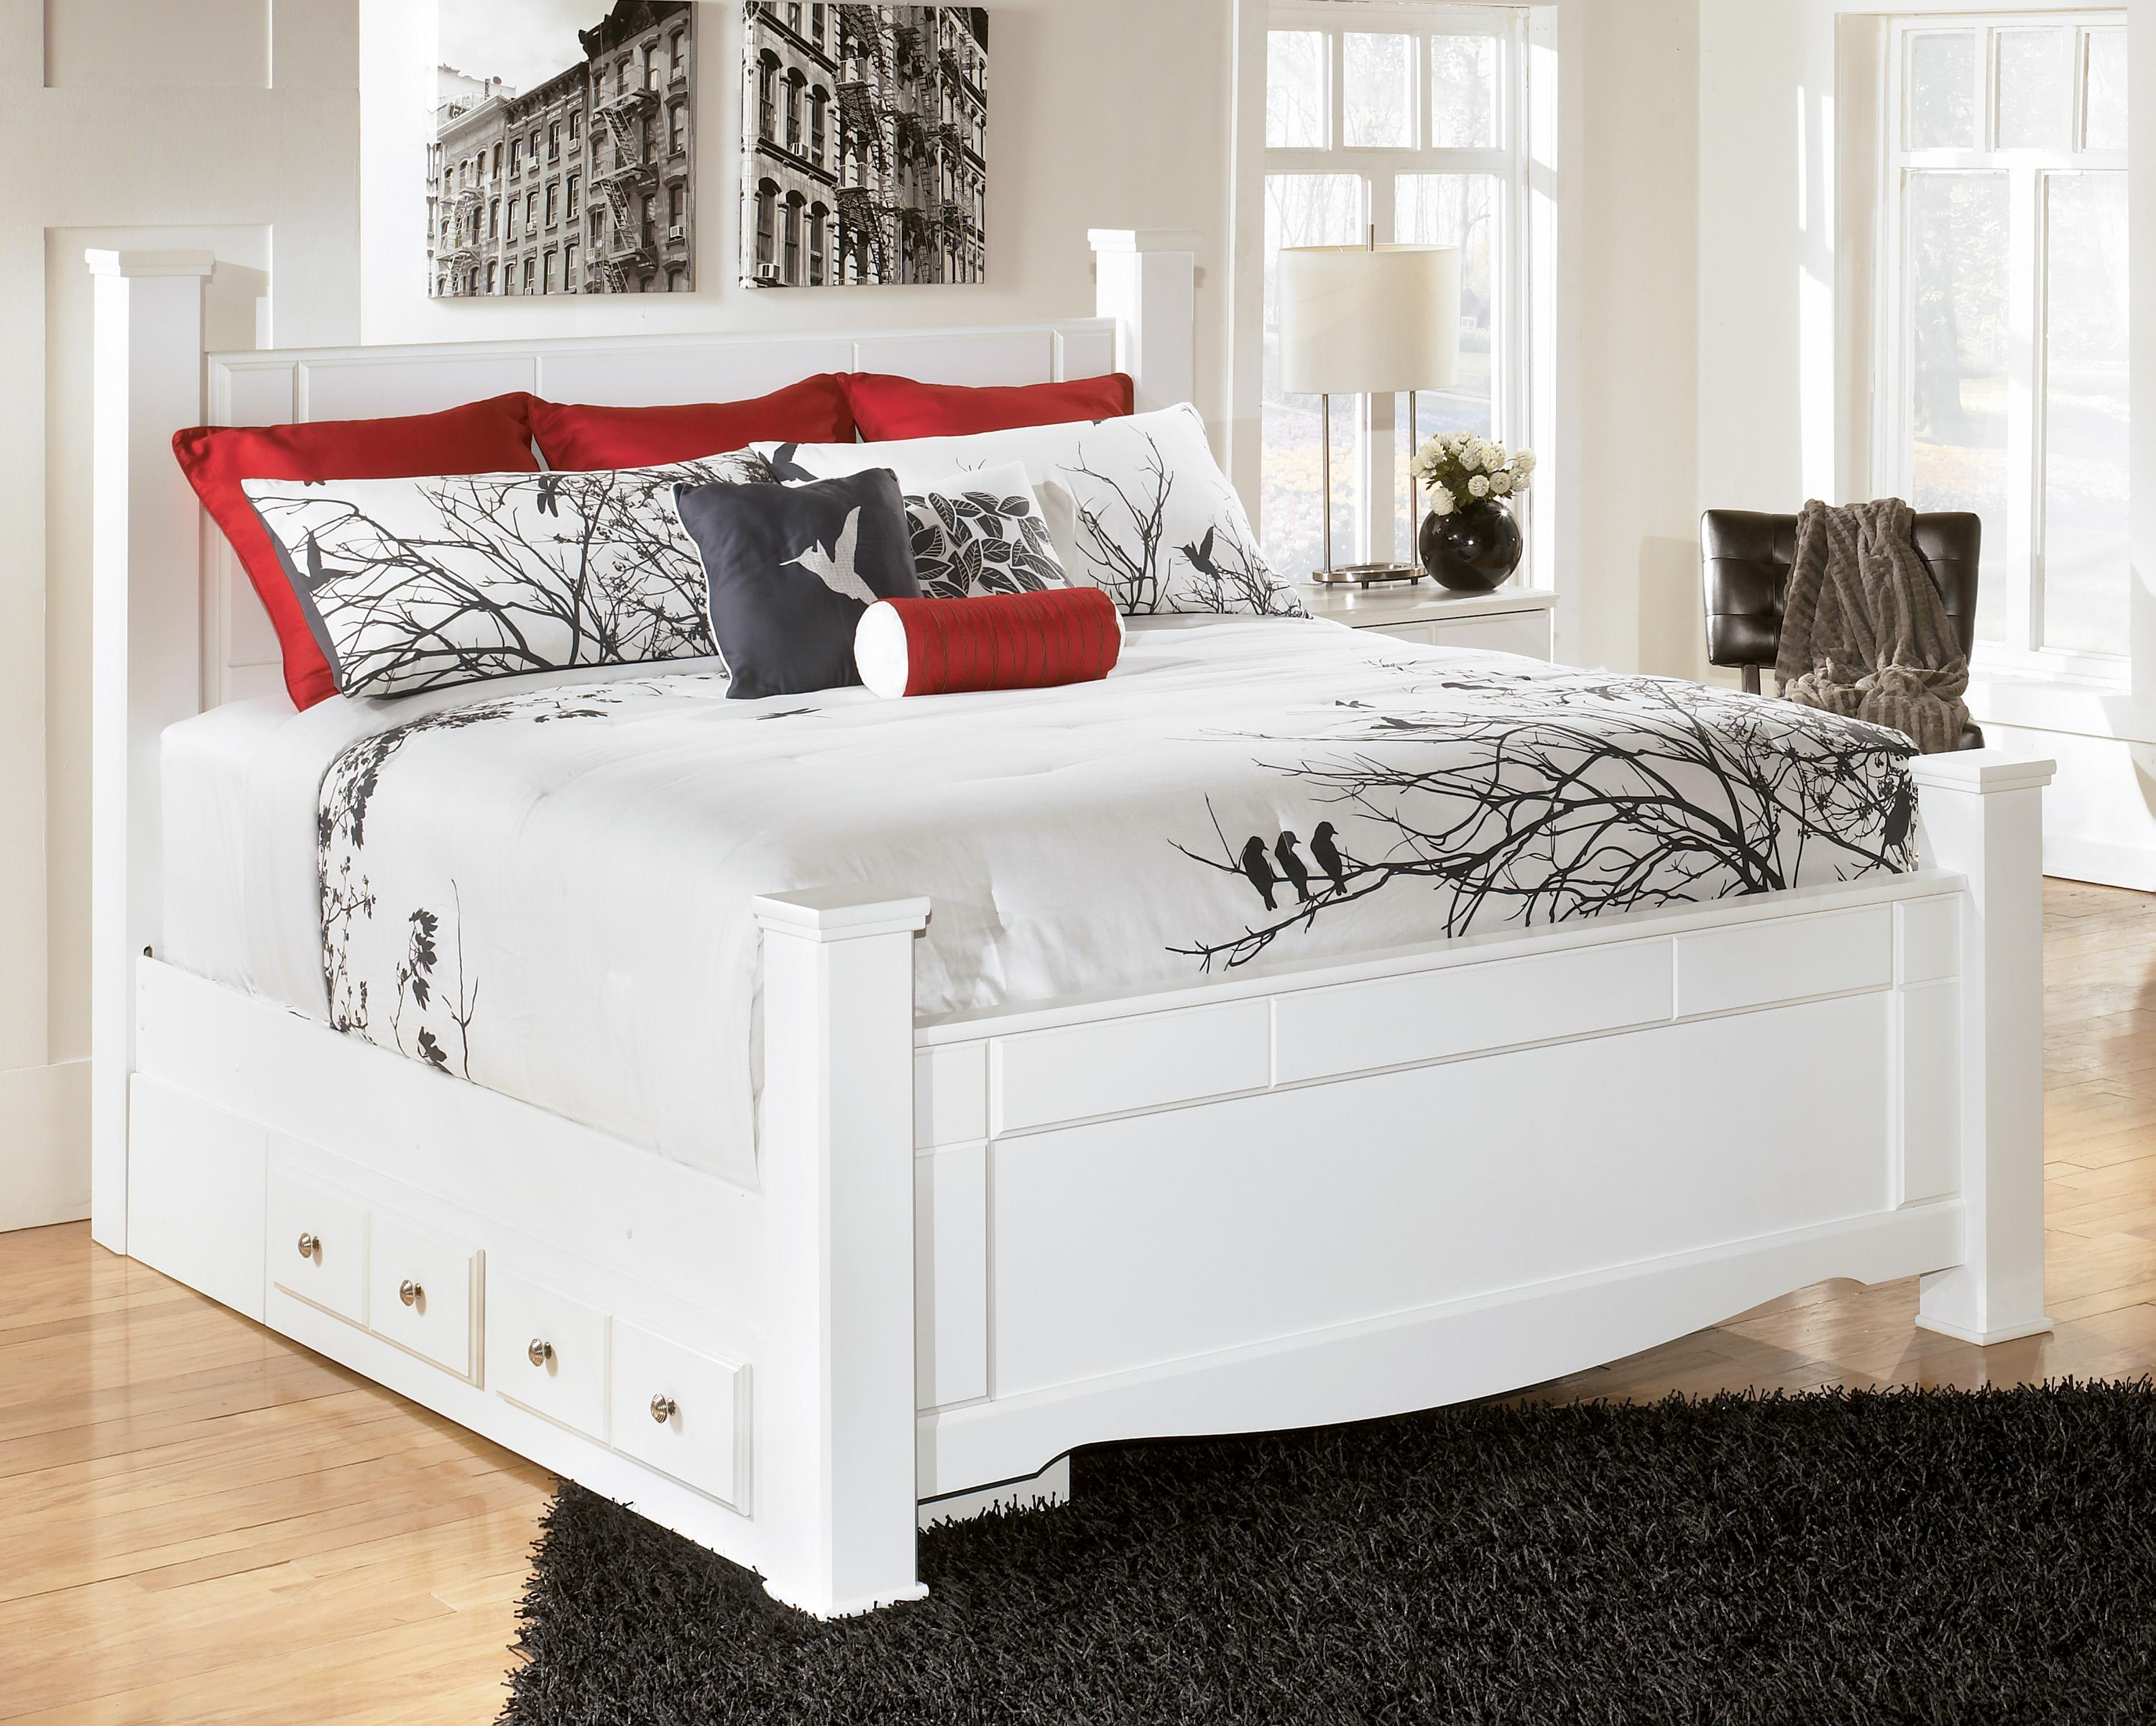 Signature Design by Ashley Weeki King Poster Bed with Underbed Storage - Item Number: B270-68+61+66+99+50